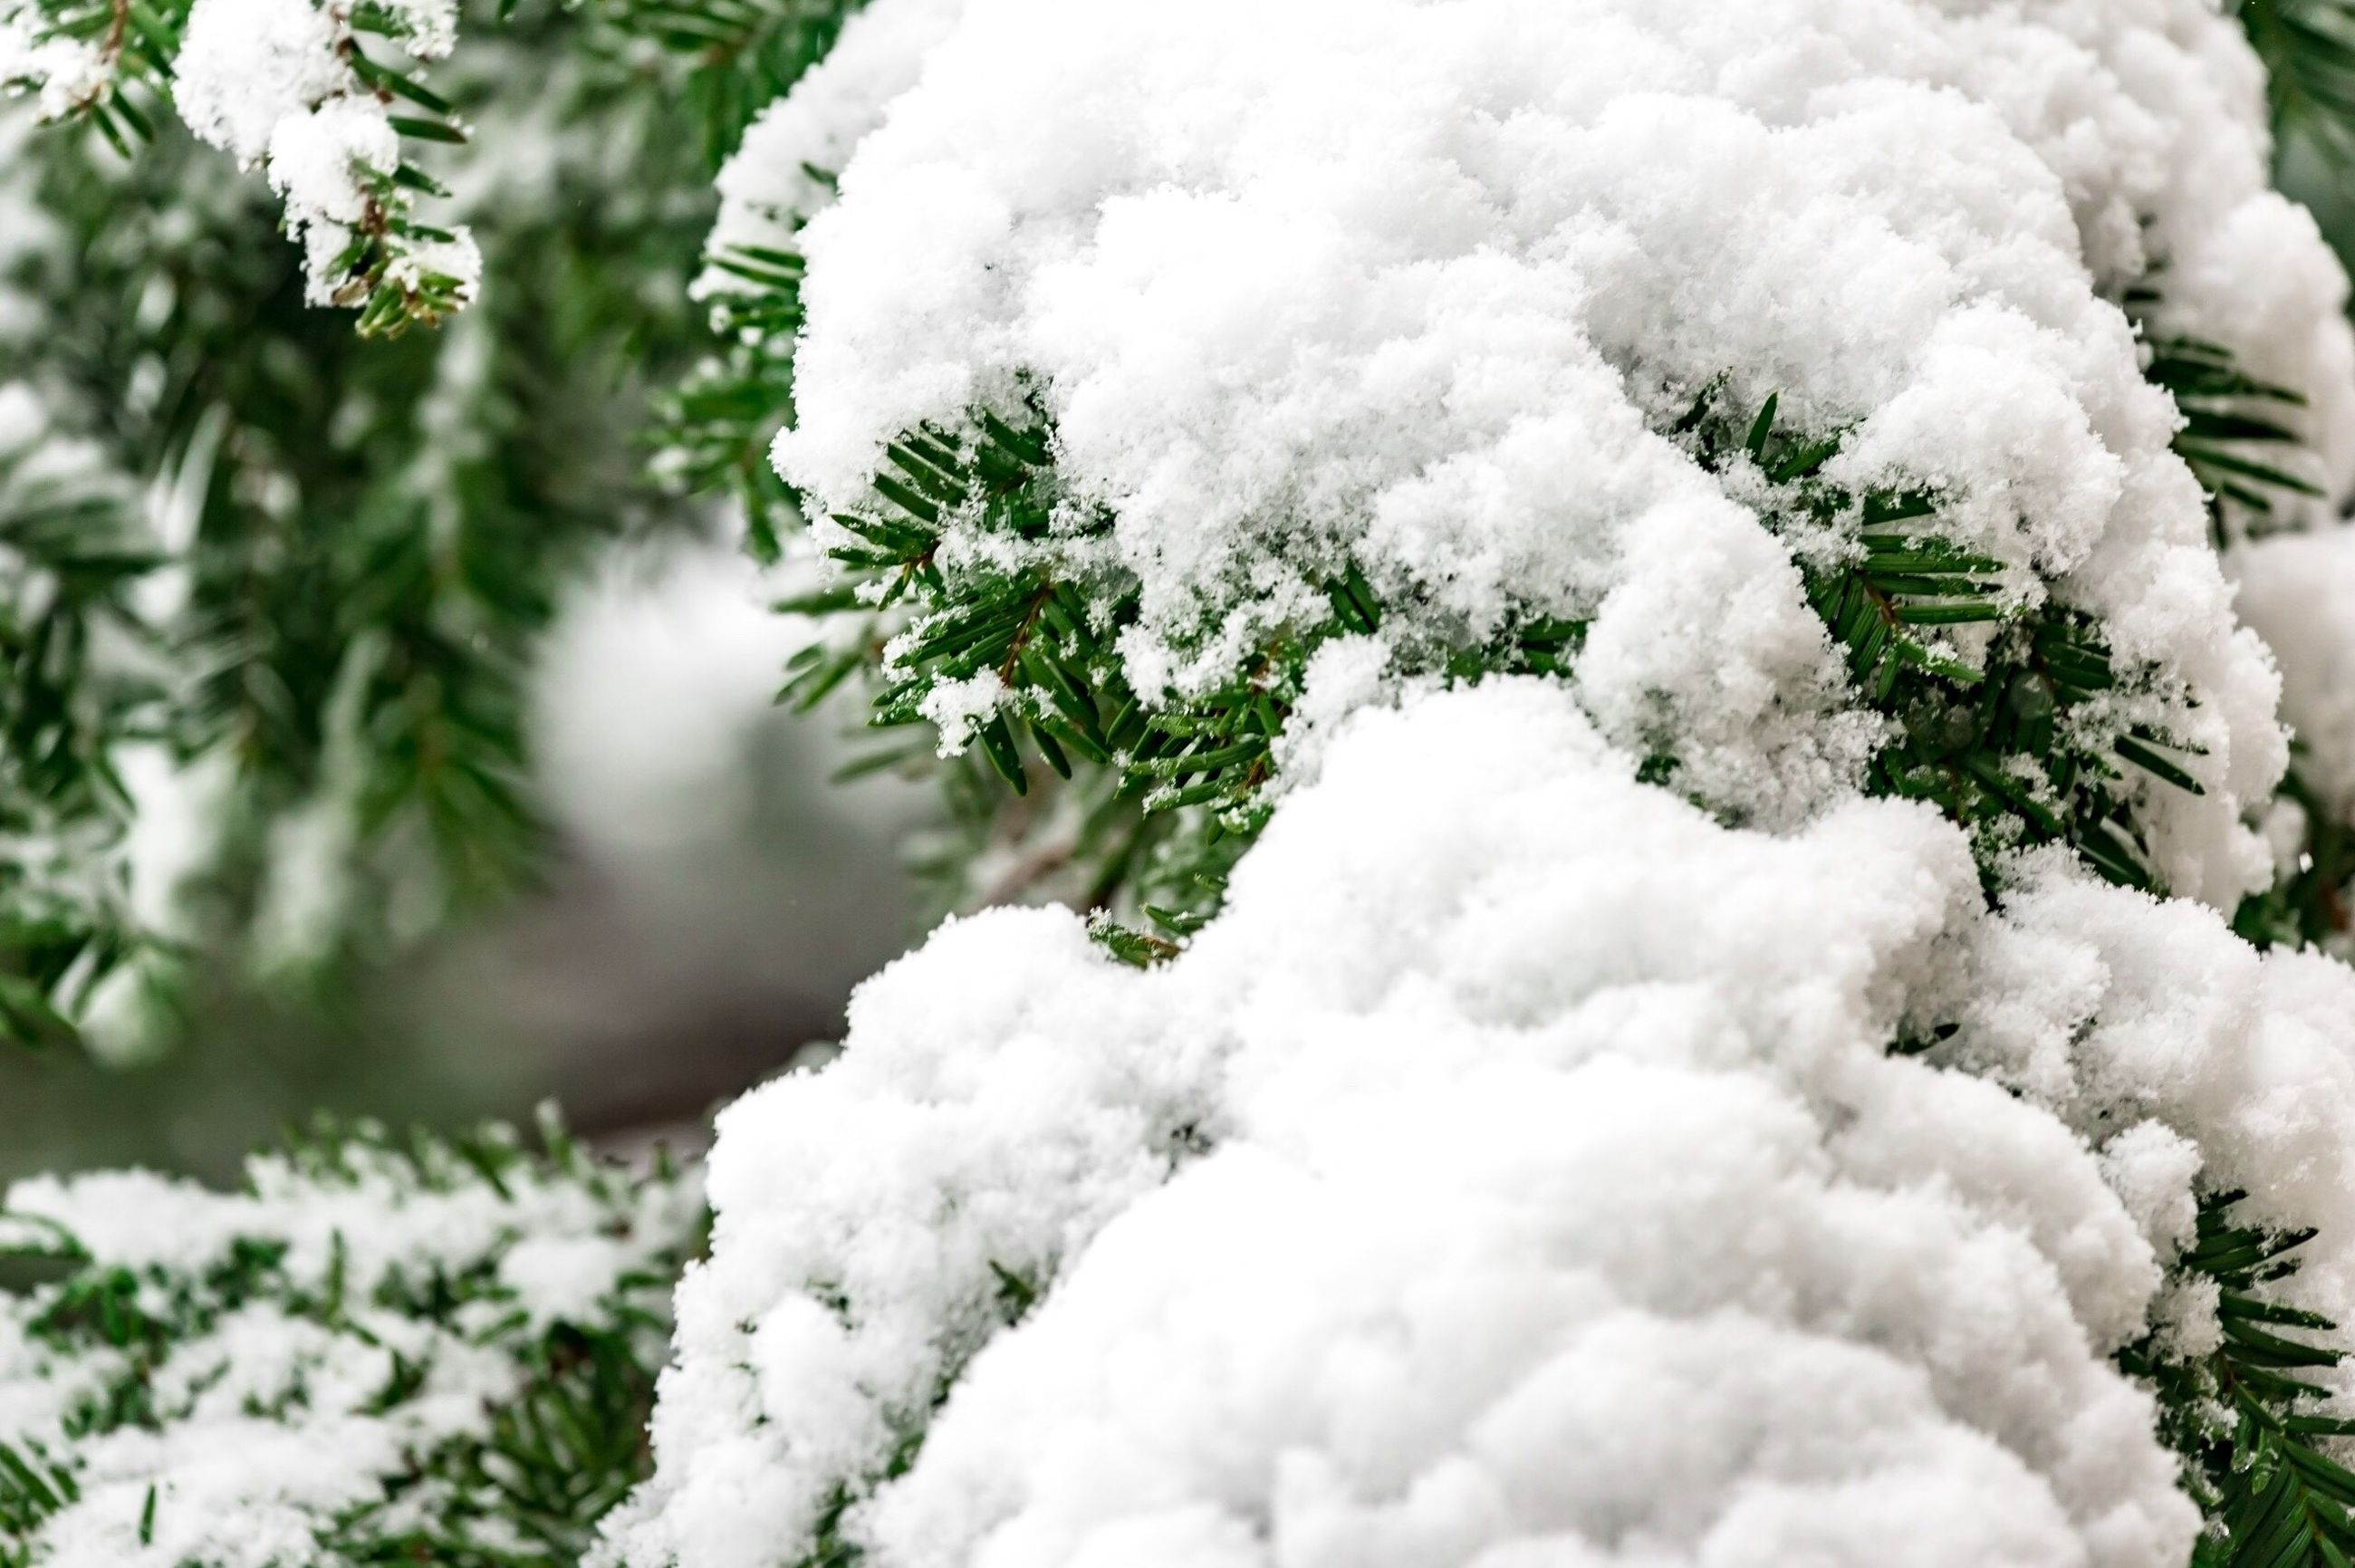 winter, snow, cold temperature, weather, white color, nature, beauty in nature, tree, close-up, no people, frozen, branch, outdoors, day